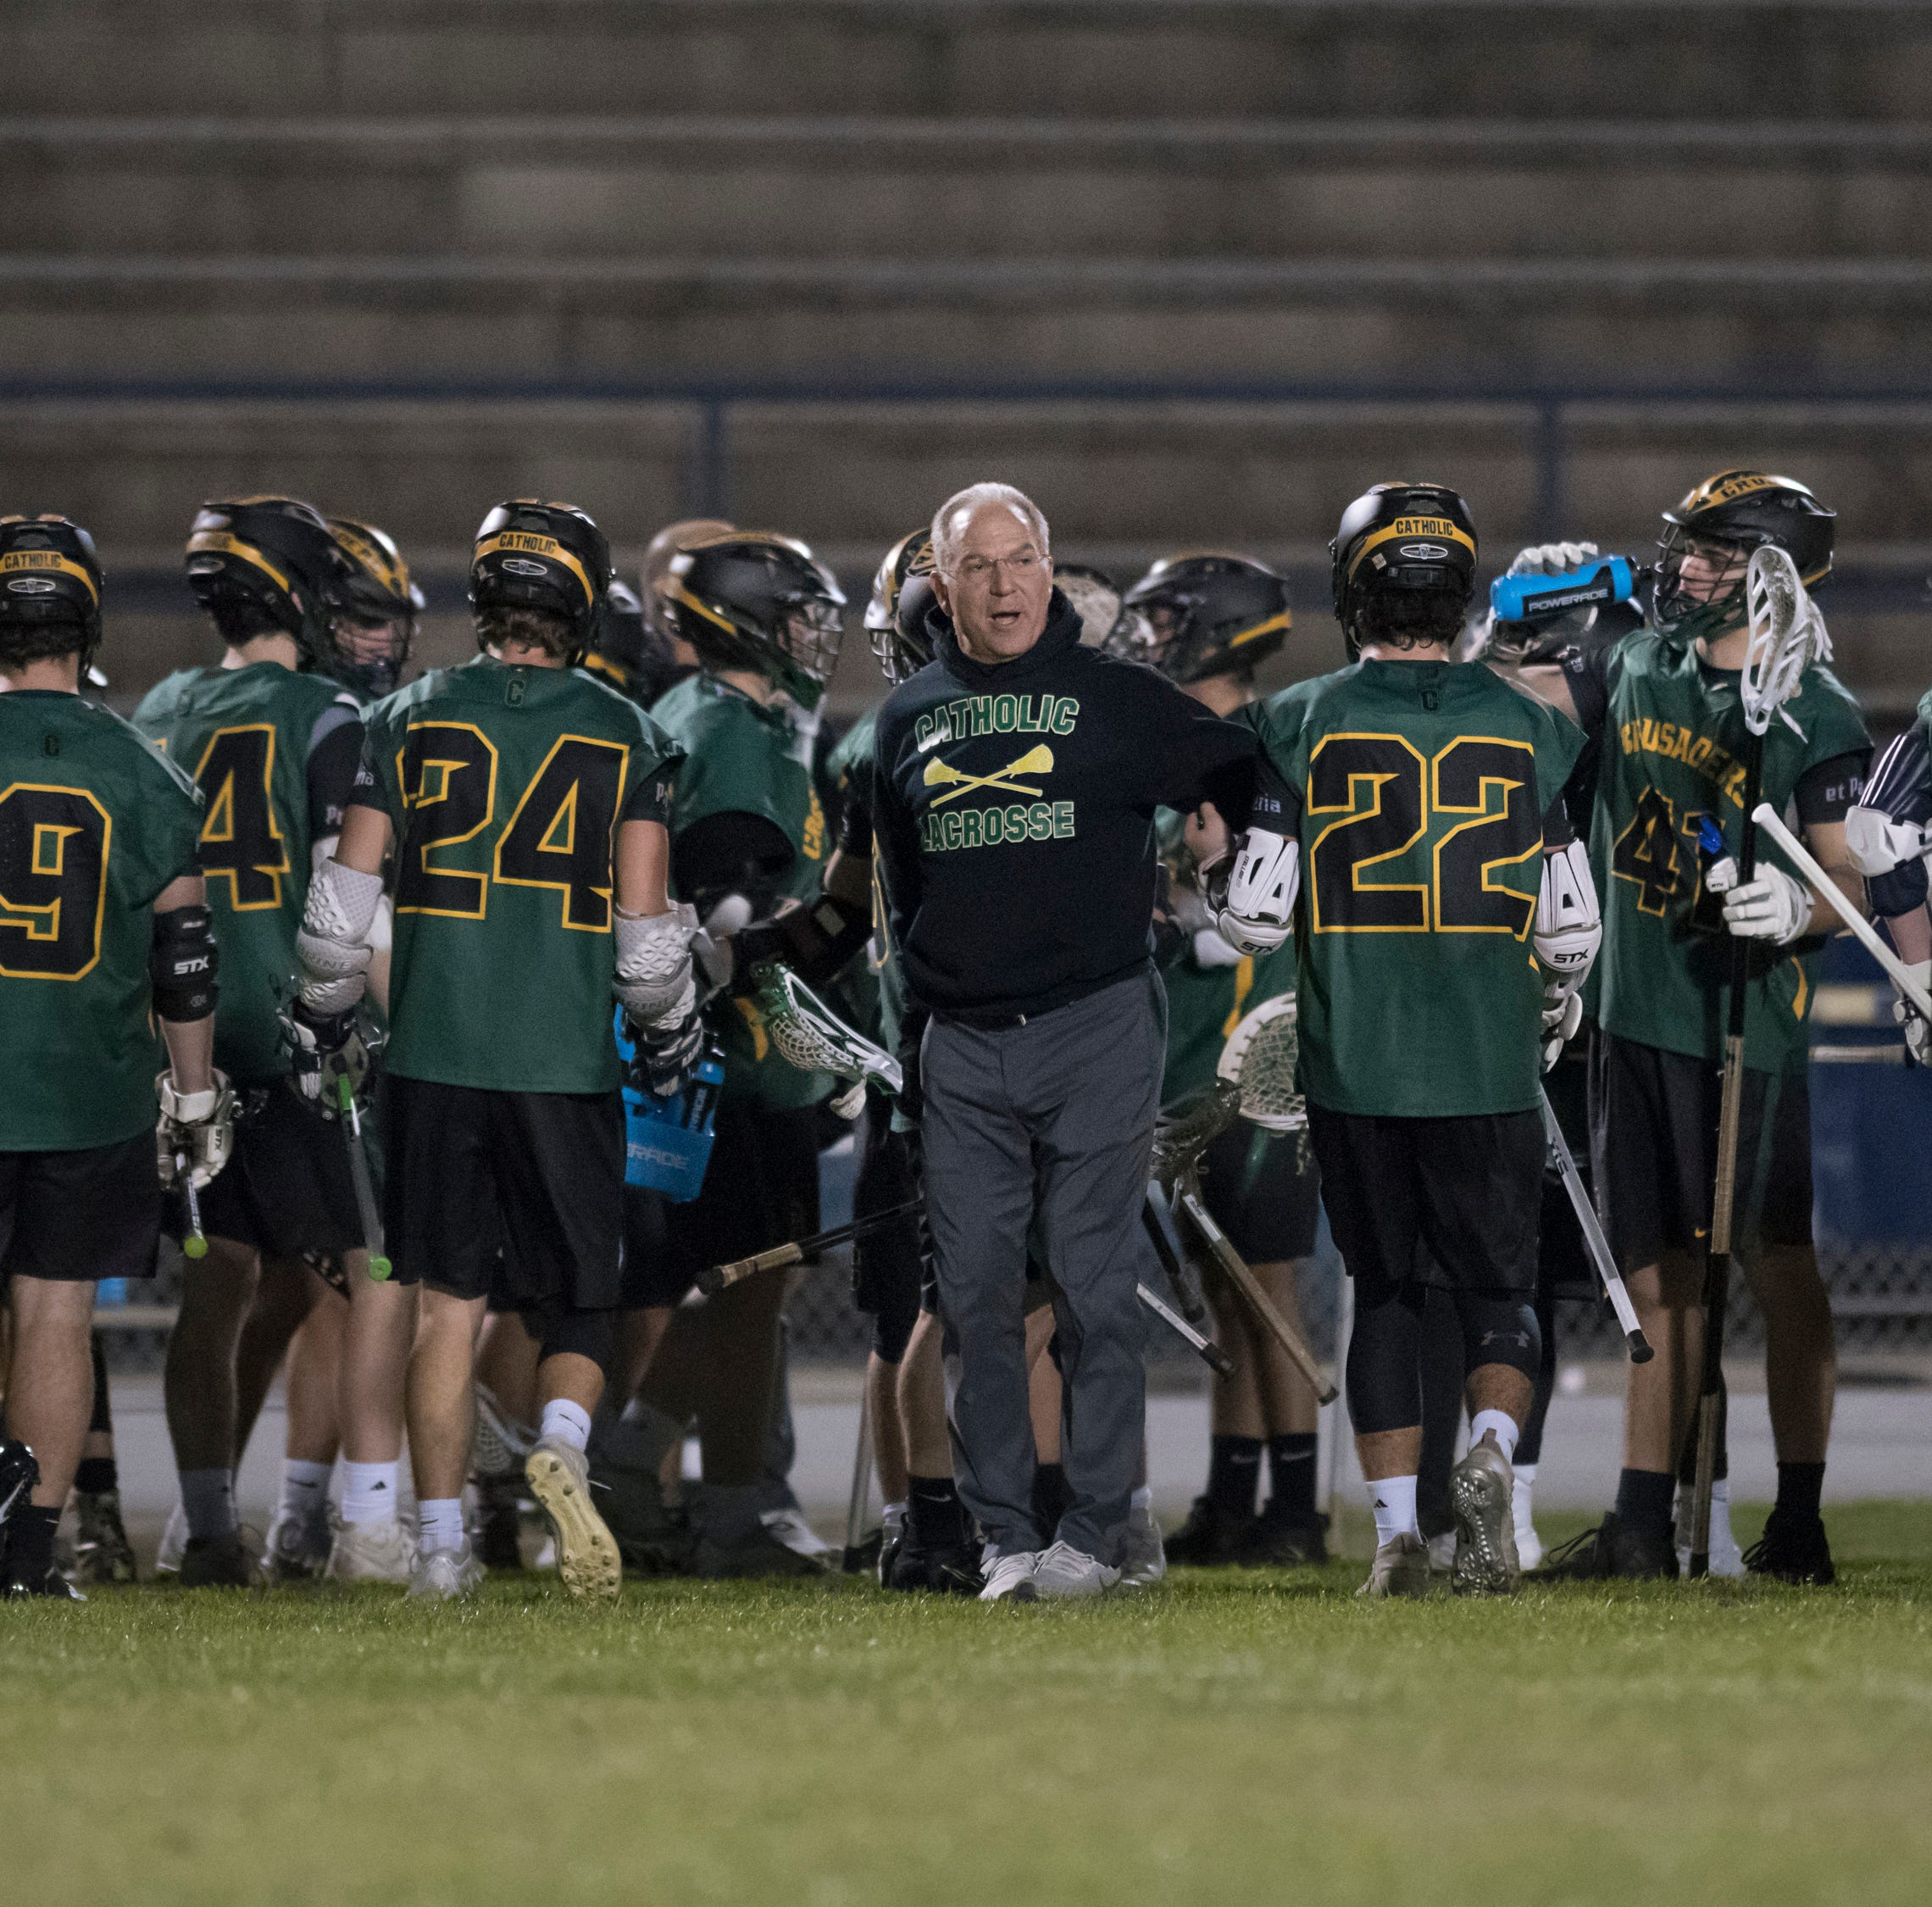 Catholic lacrosse earns explosive win over Pensacola High;  Pace baseball improves to 8-1